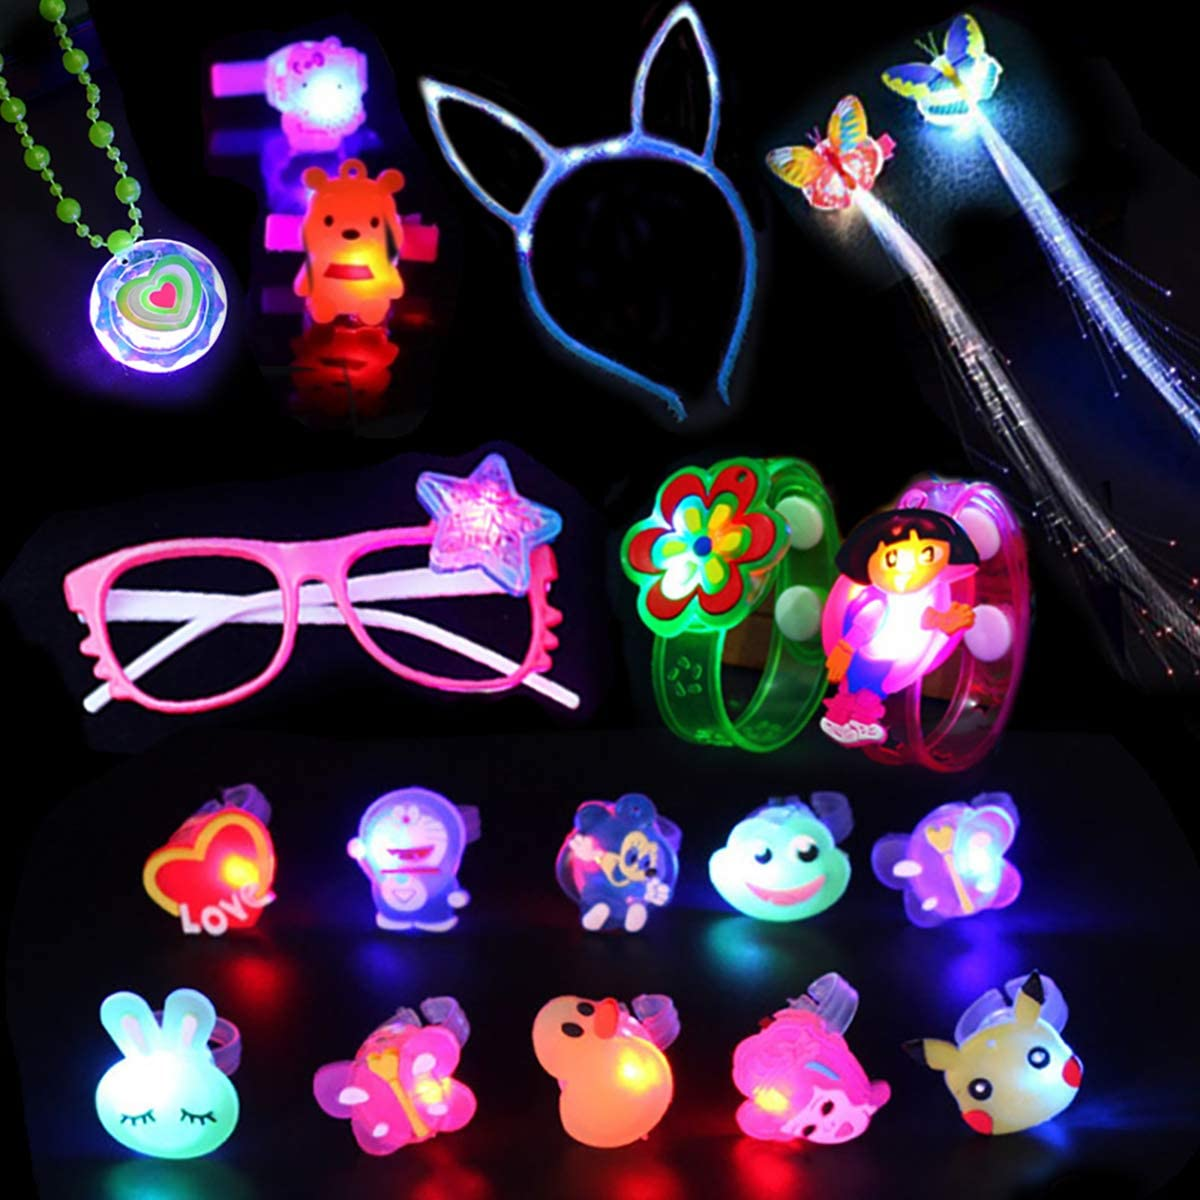 19Pcs LED Light Up Toy Party Favors Glow In The Dark,Party Supplies Bulk For Adult Kids Birthday Halloween With 10 Finger Light, 1 Flashing Glasses, 2 Bracelet, 2 Fiber Optic Hair Light,1 Cat Ear Headwear,1 flashing Necklaces,2 Hair Clip(Random style)